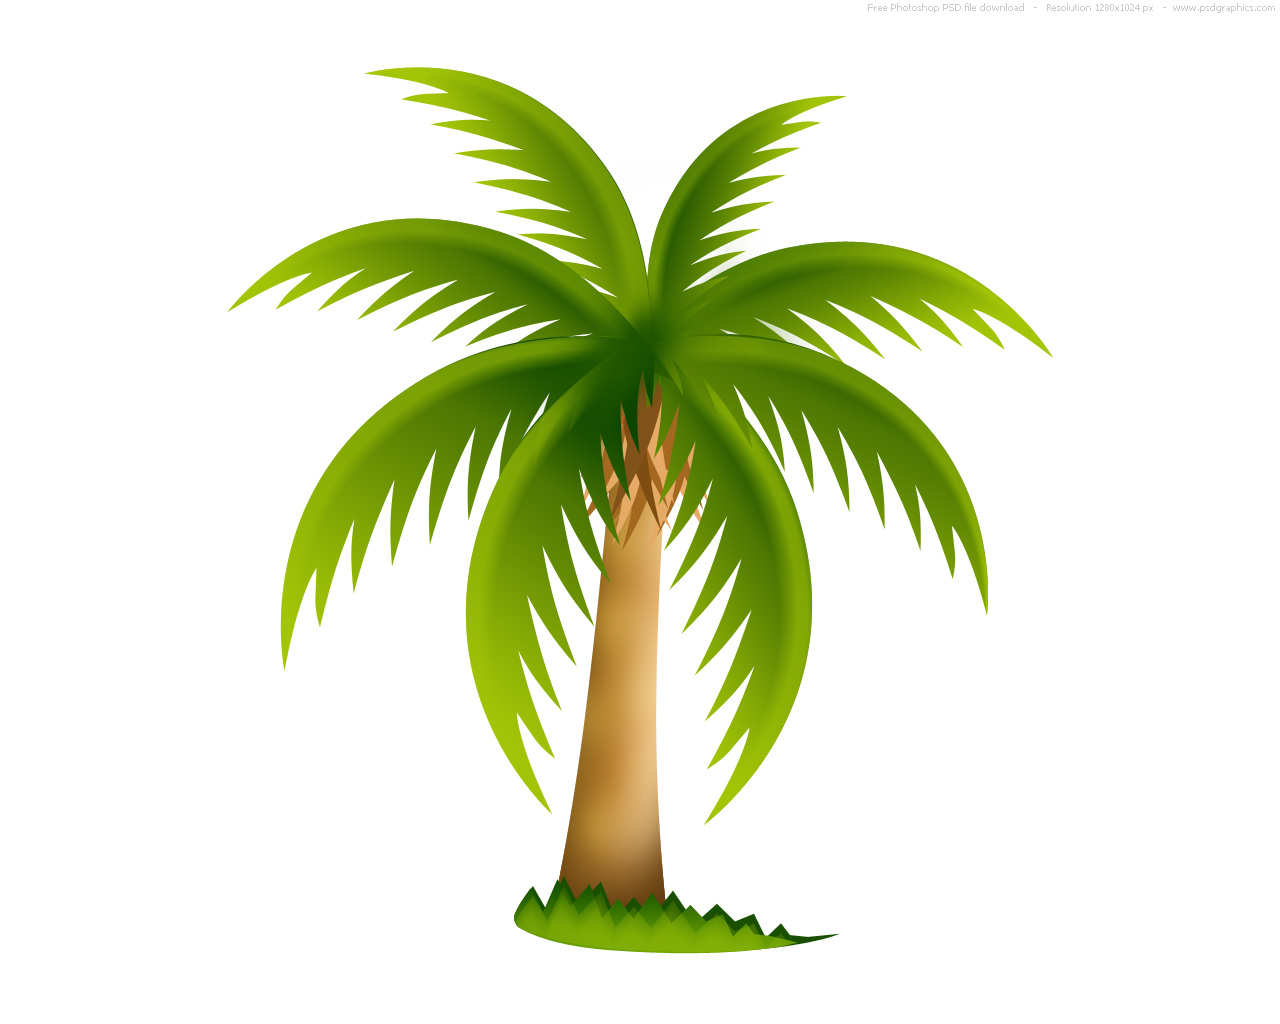 Palm Tree clipart #1, Download drawings